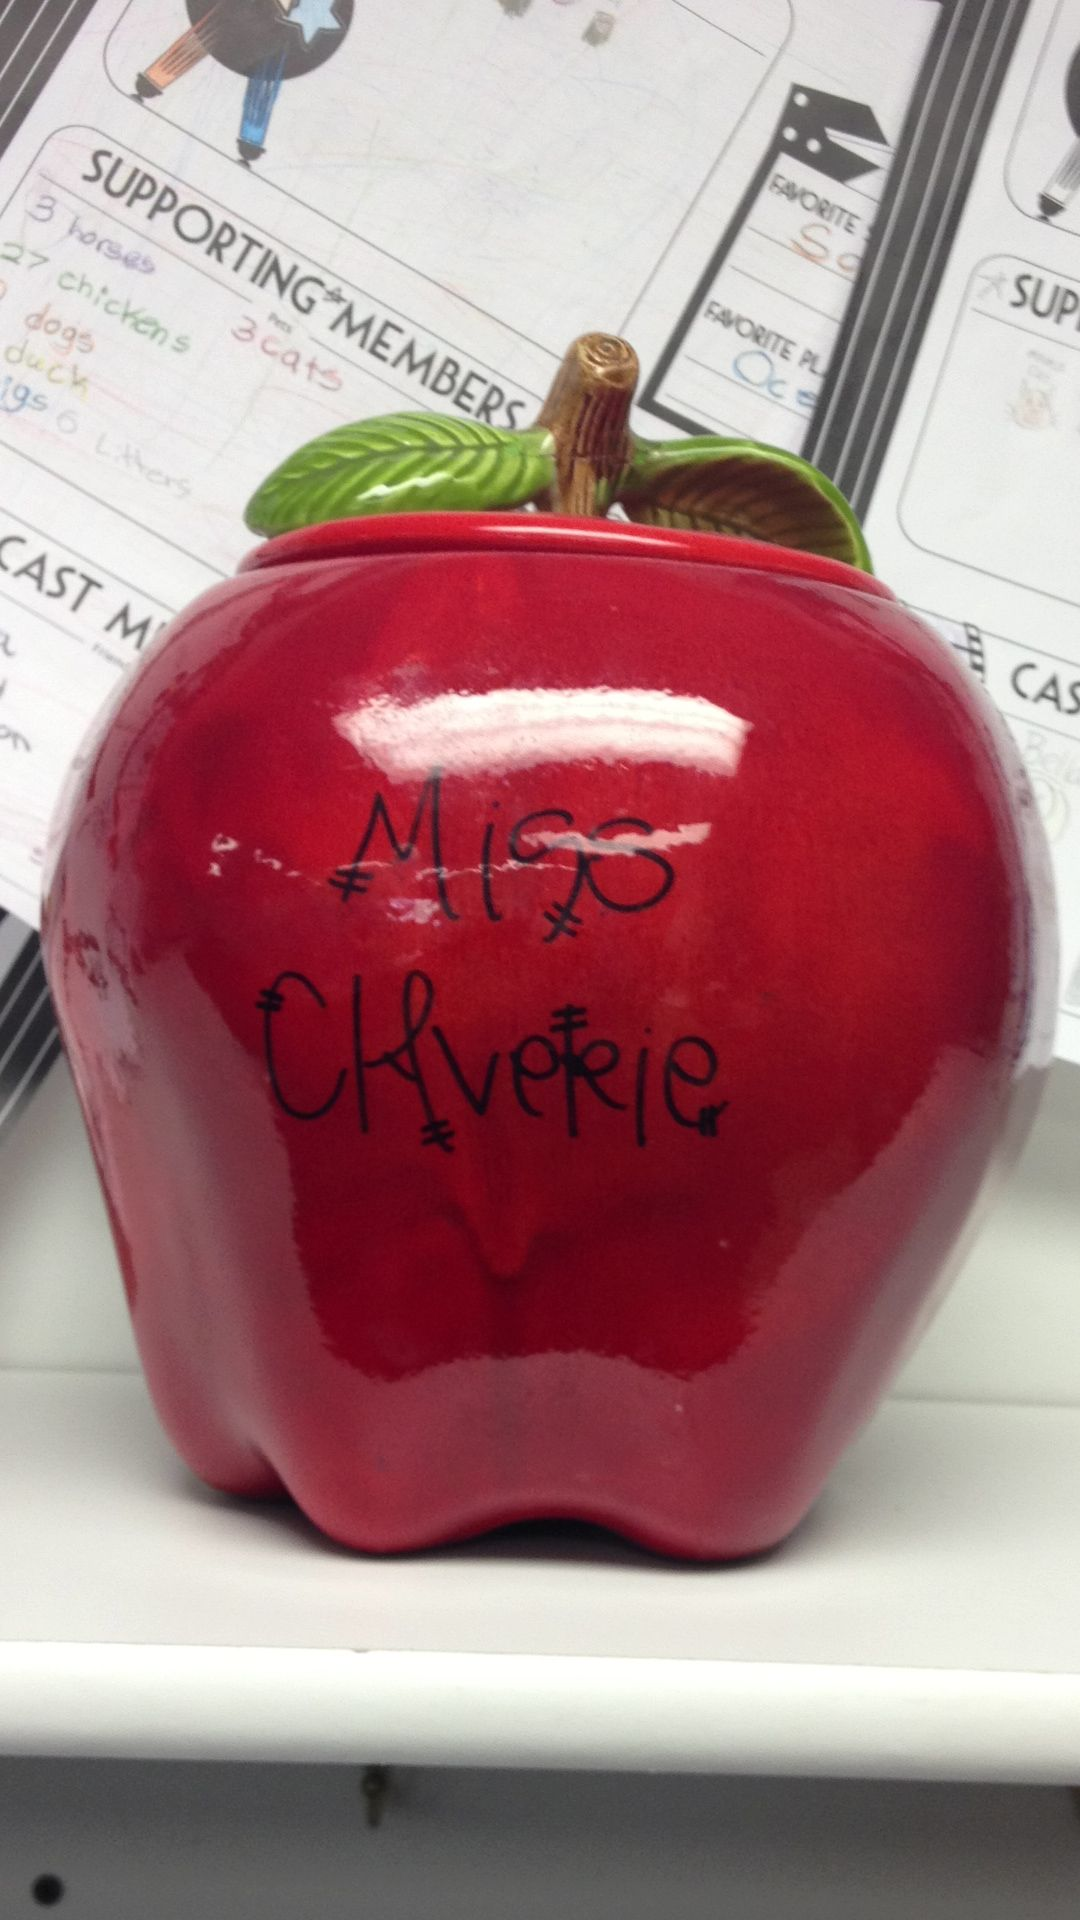 Apple cookie jar with the teachers name